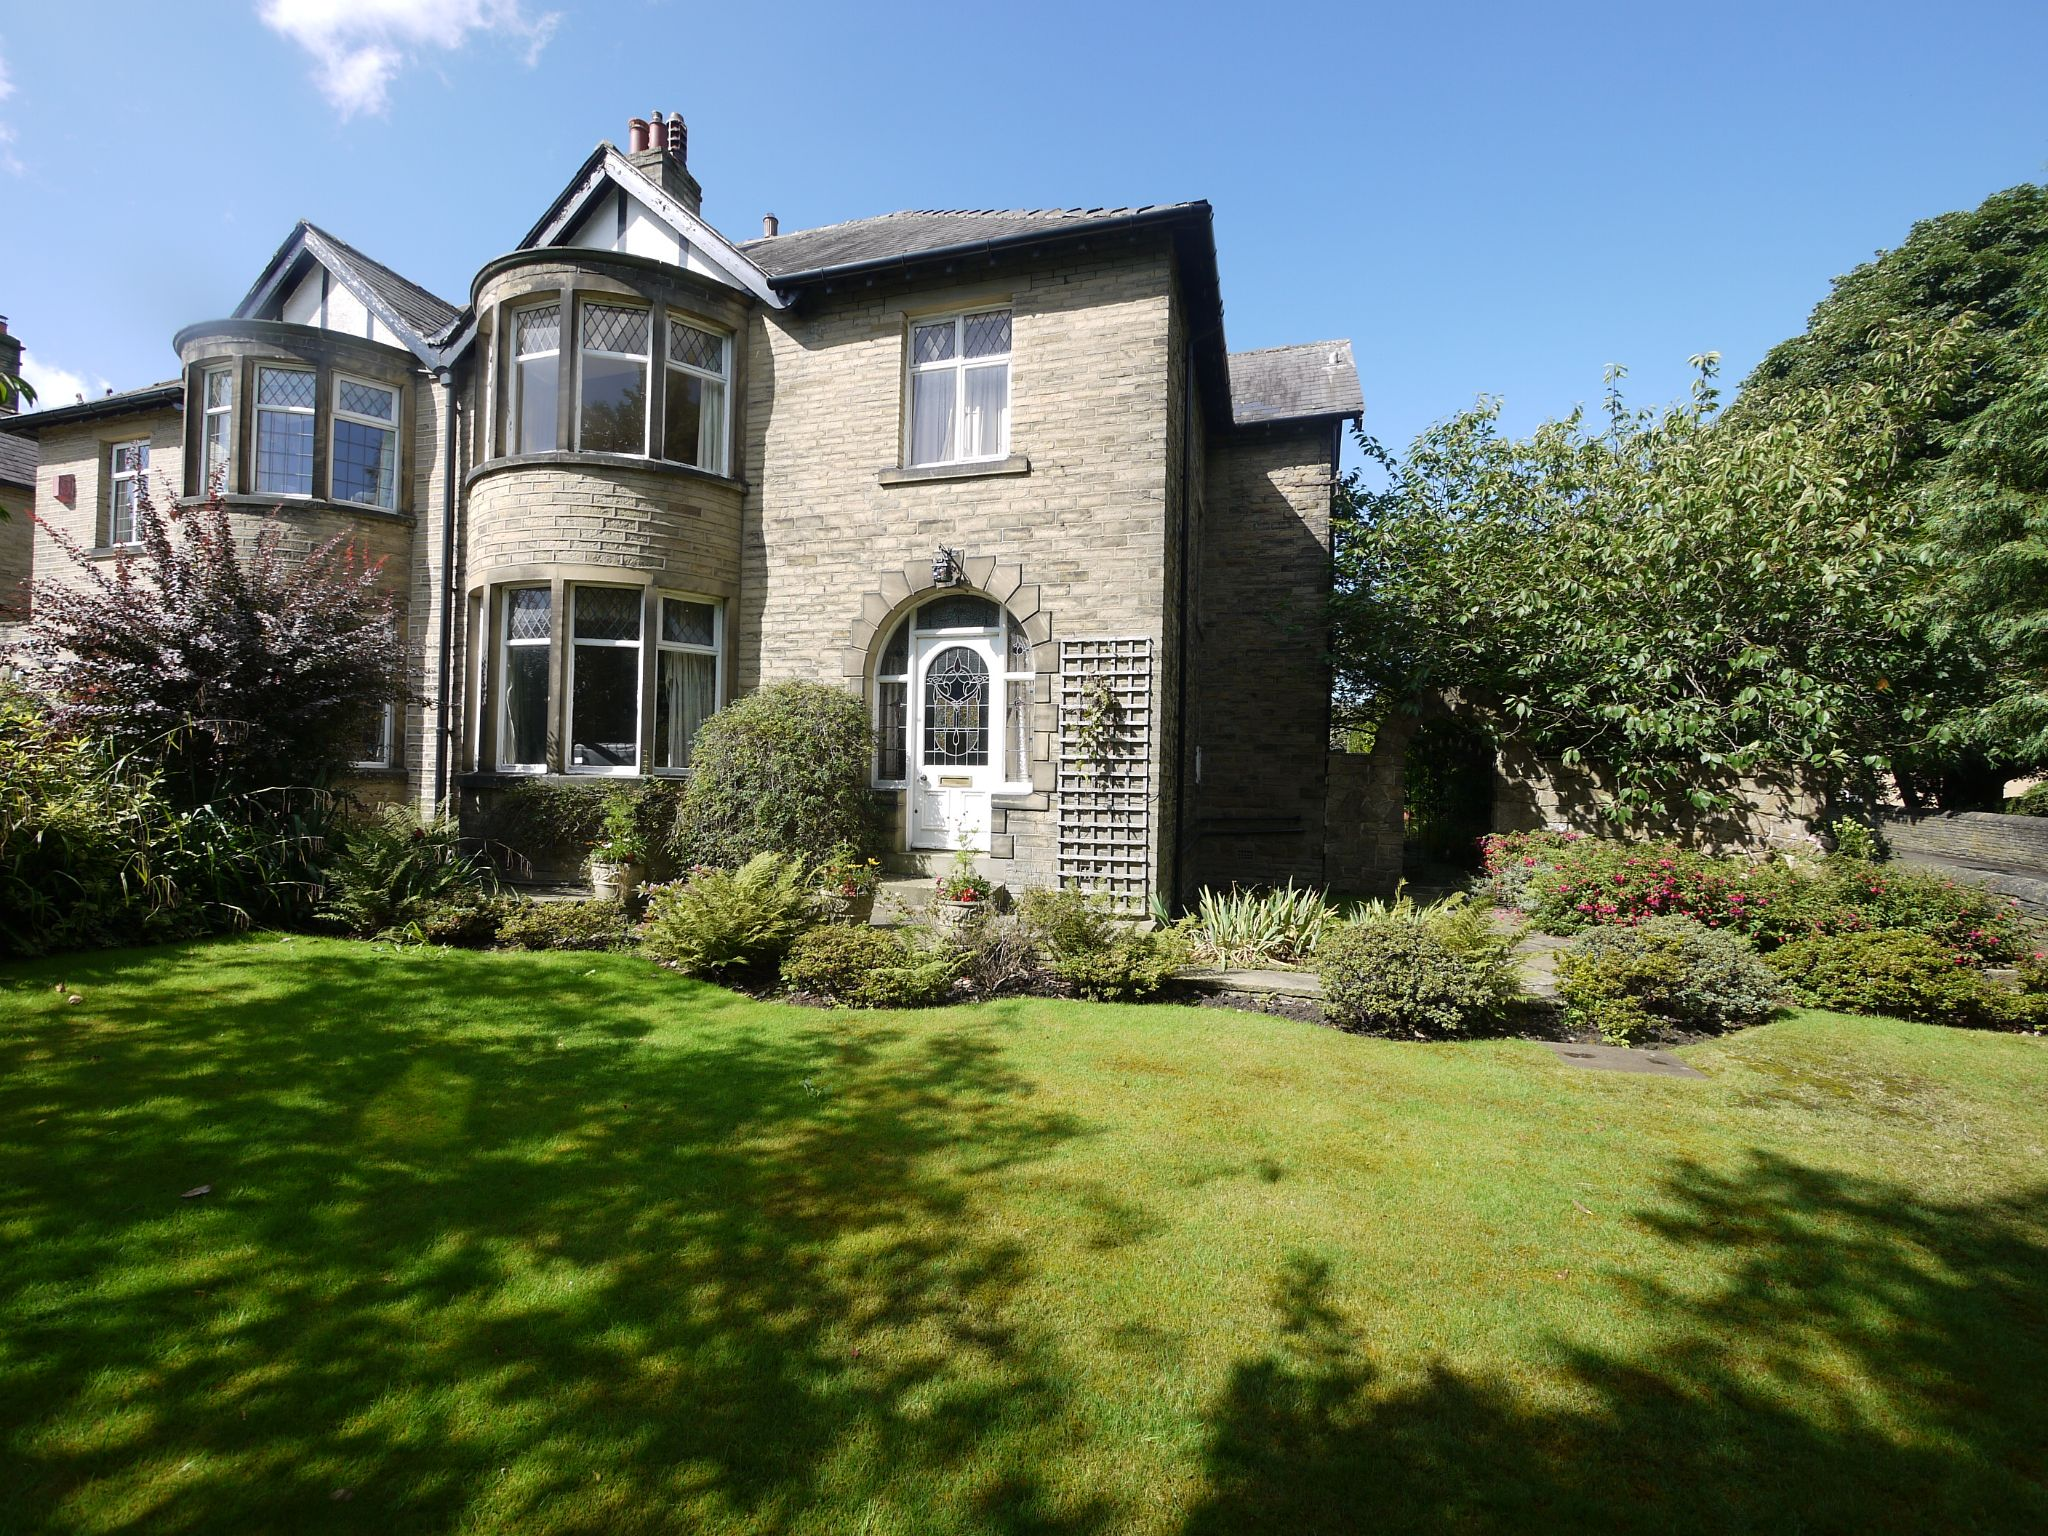 4 bedroom semi-detached house SSTC in Brighouse - Main.